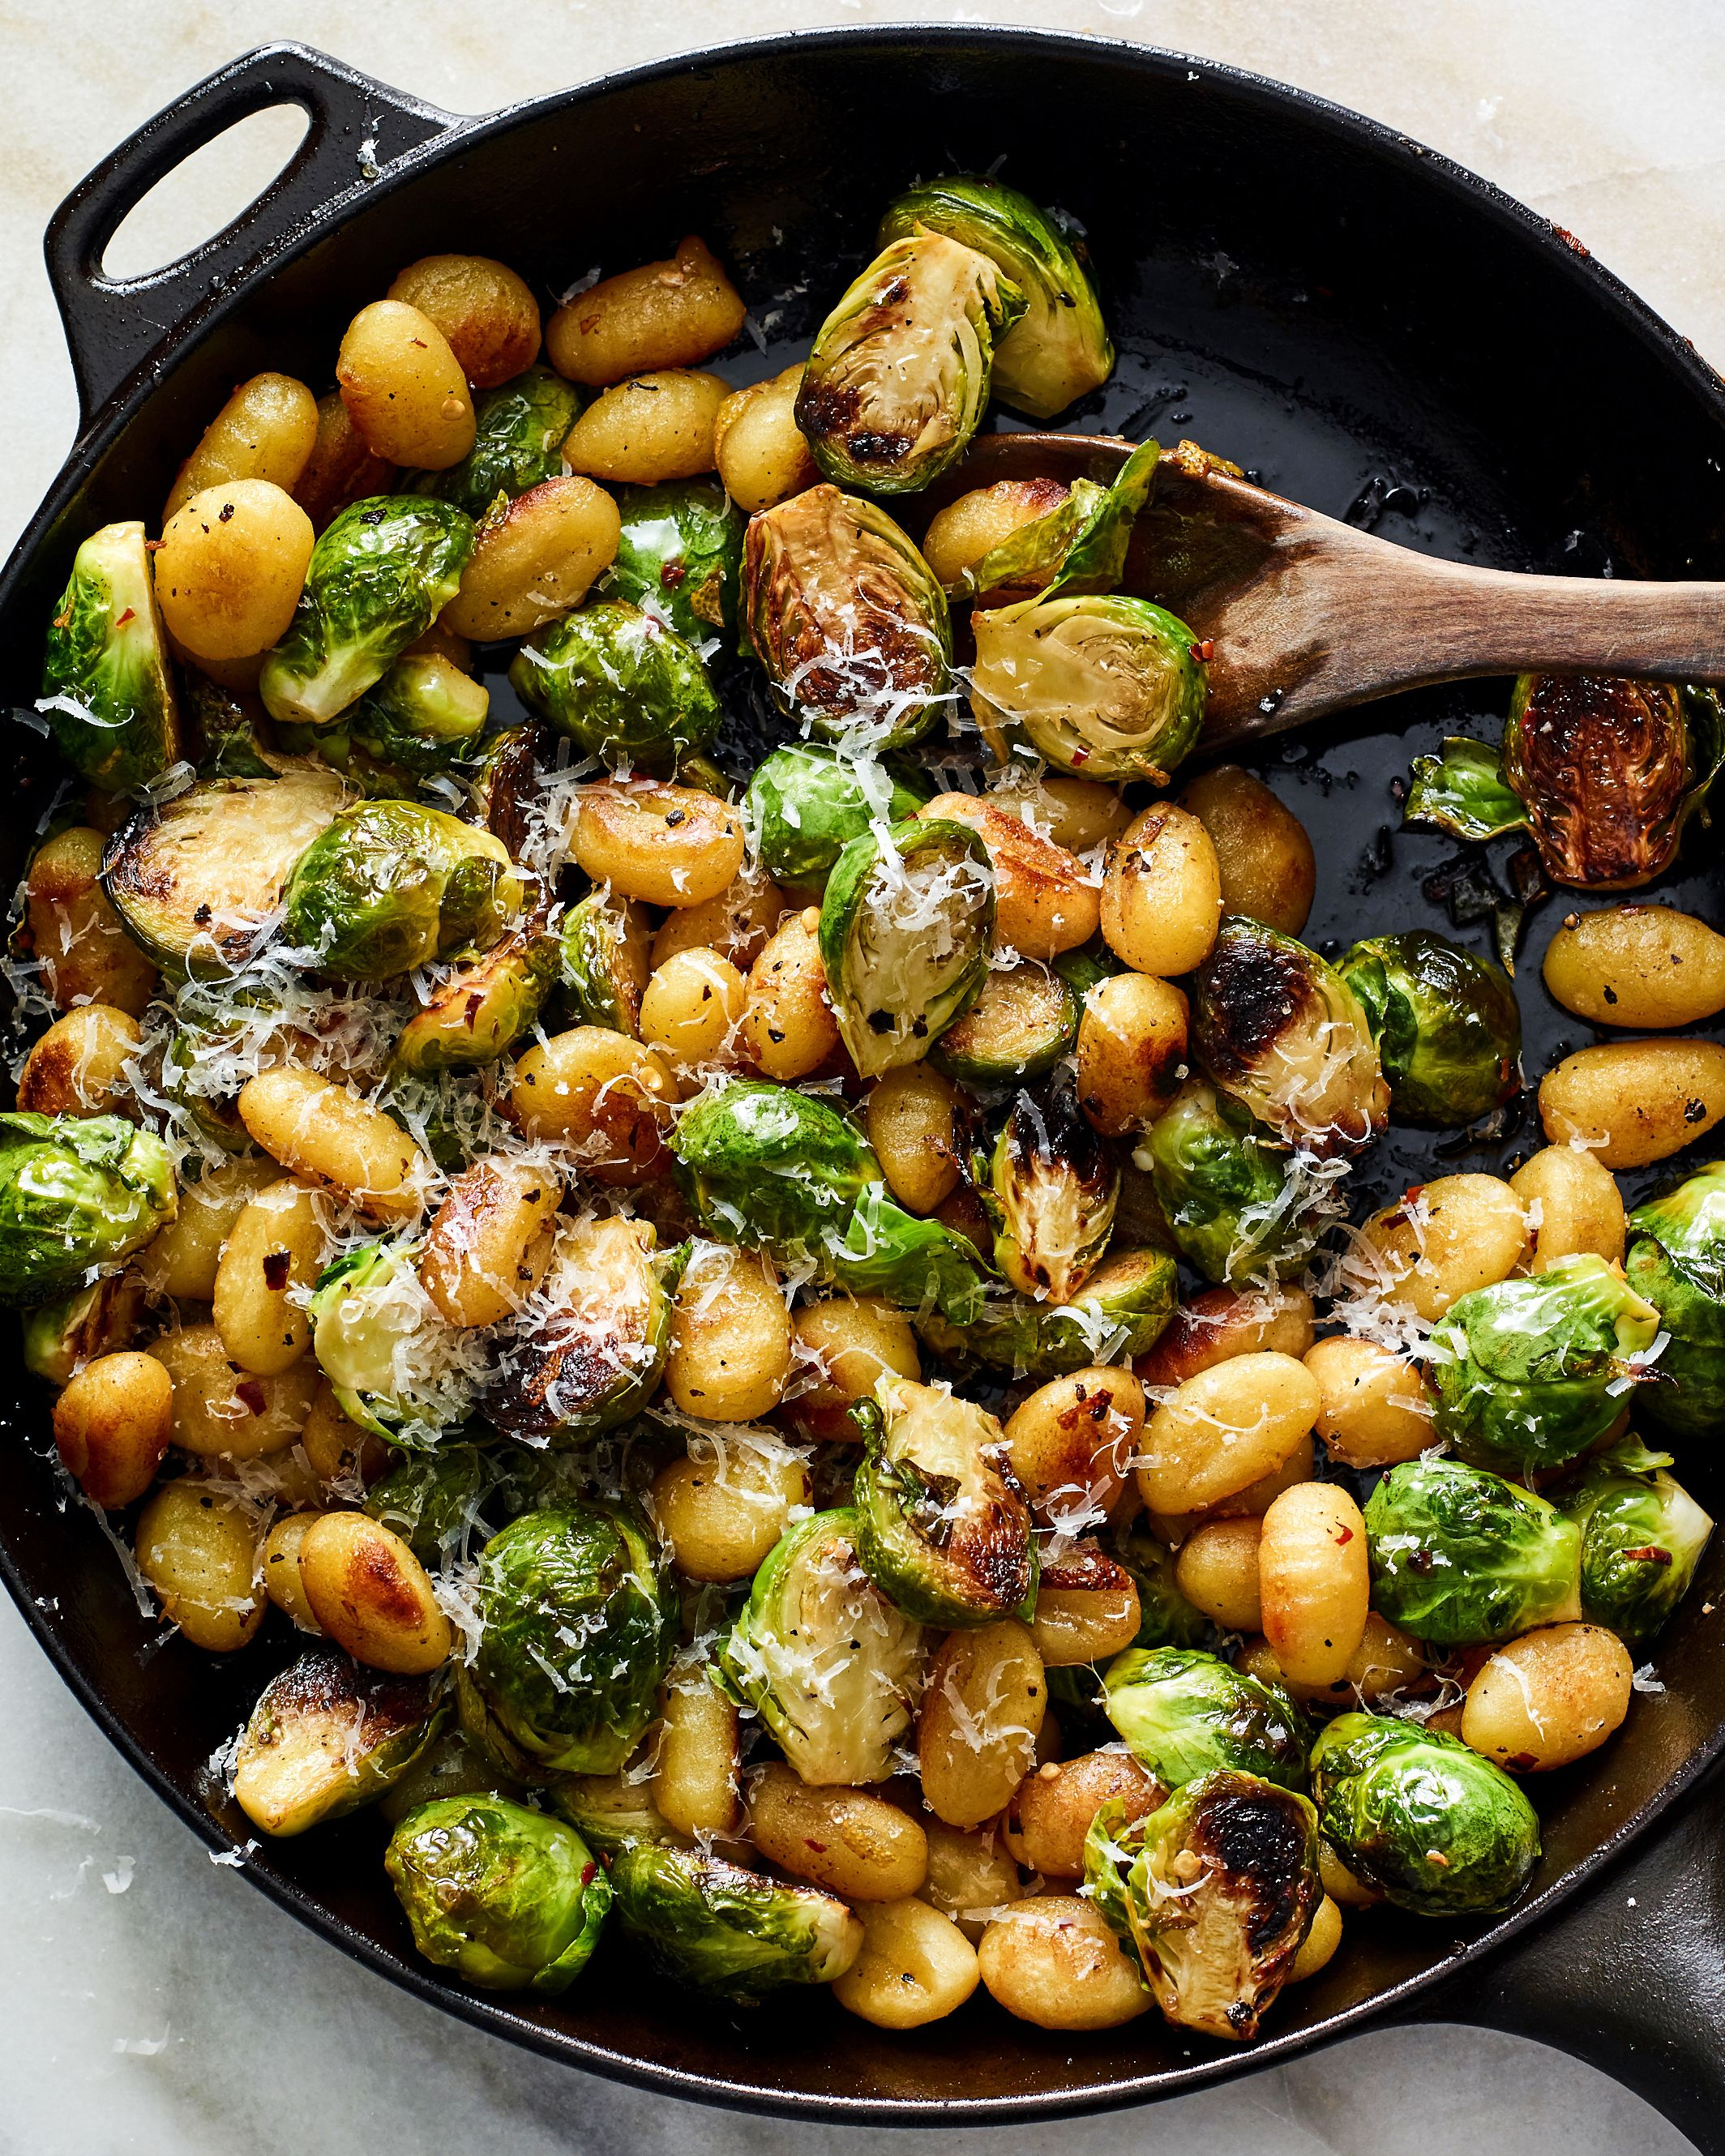 Crisp Gnocchi With Brussels Sprouts and Brown Butter  #fallrecipesdinner